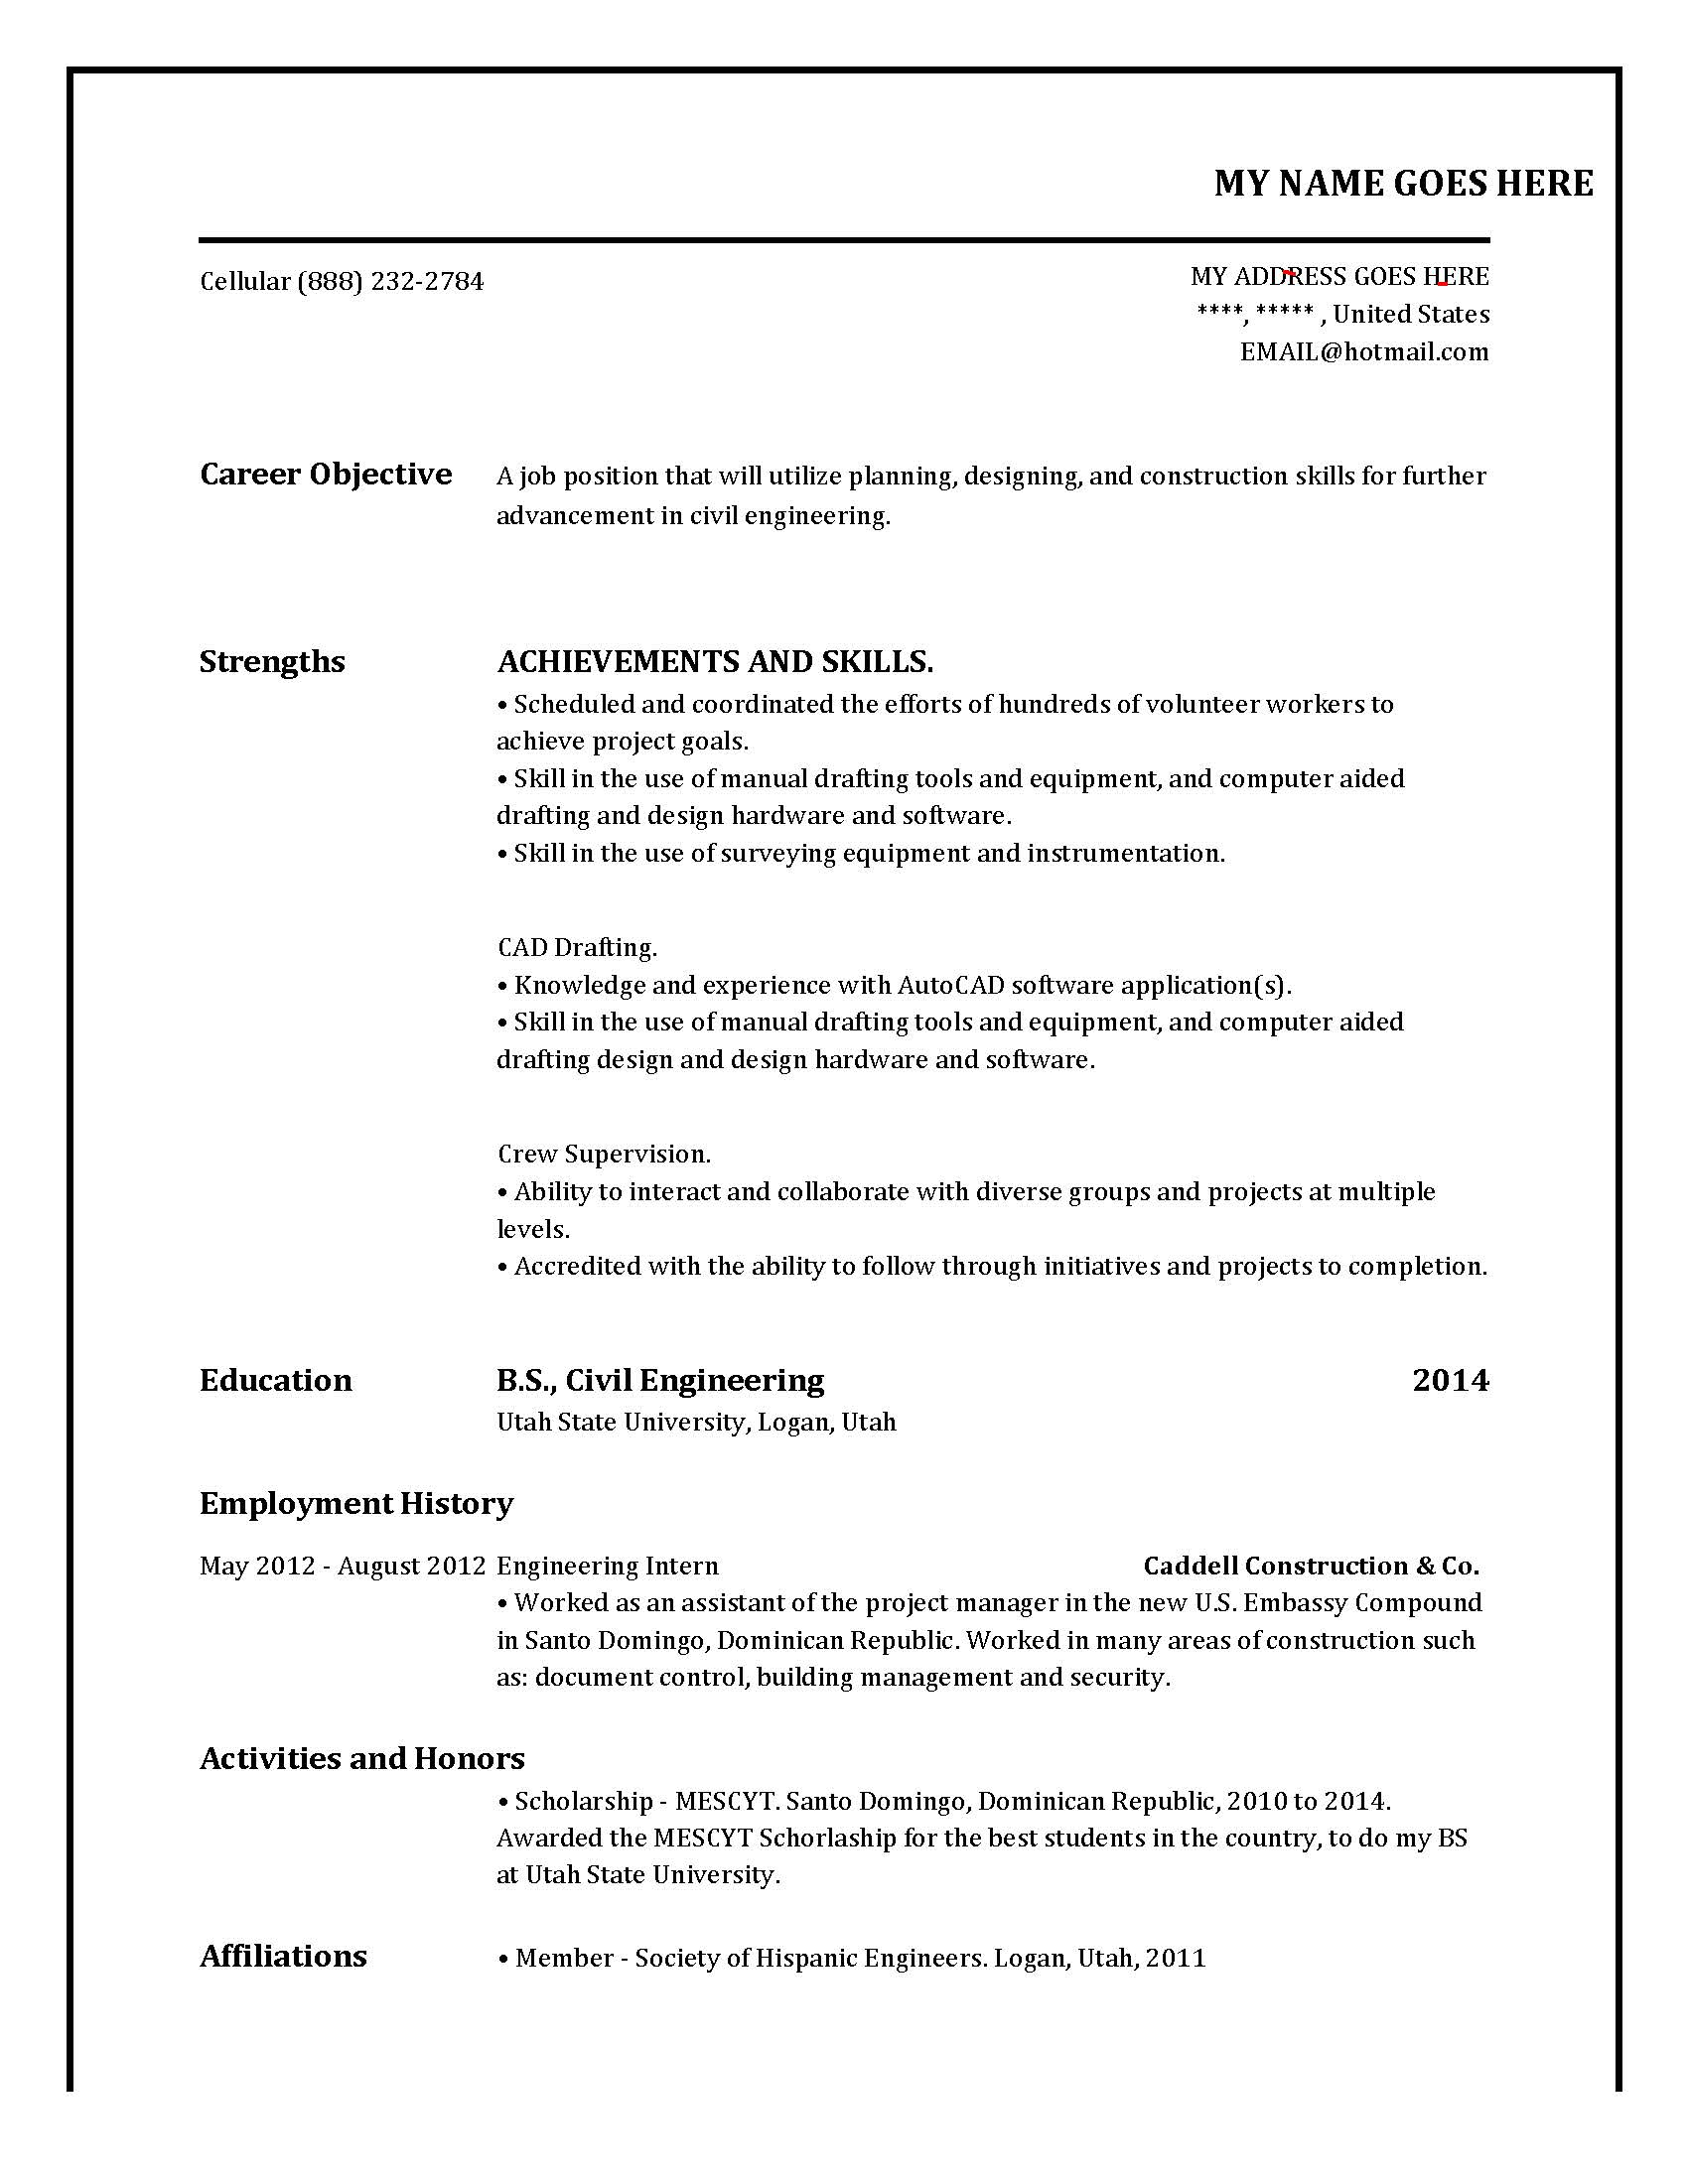 resume format publications professional resume cover letter sample resume format publications how to mention journal publications in resume degreeinfo to resume revef5si how to